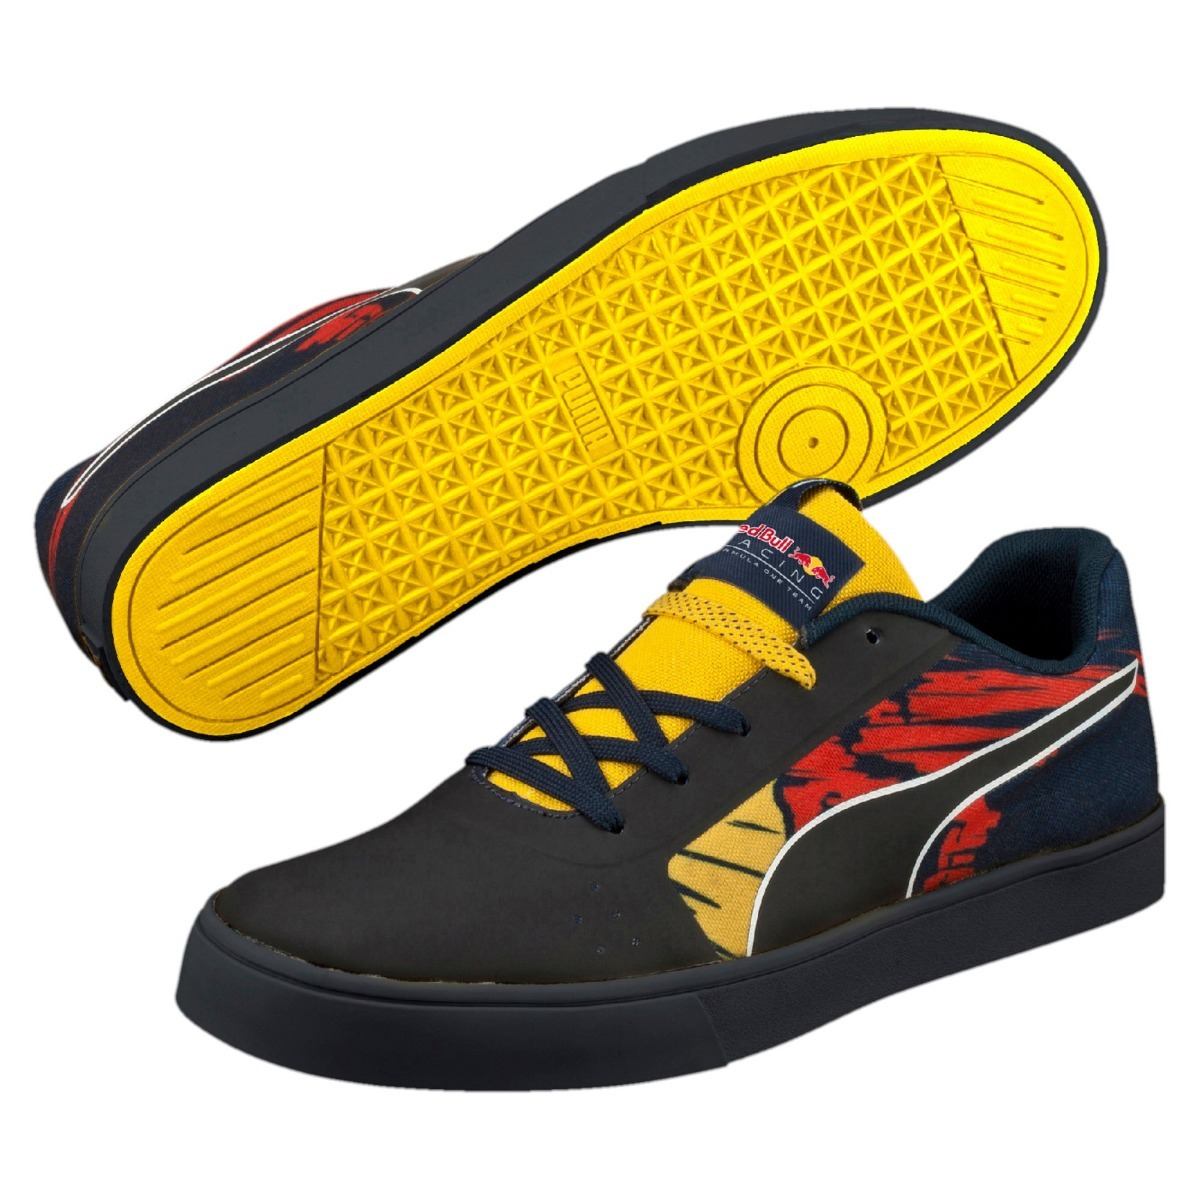 465e2068a3c tenis puma red bull racing wings vulc bulls 305754 01. Cargando zoom.